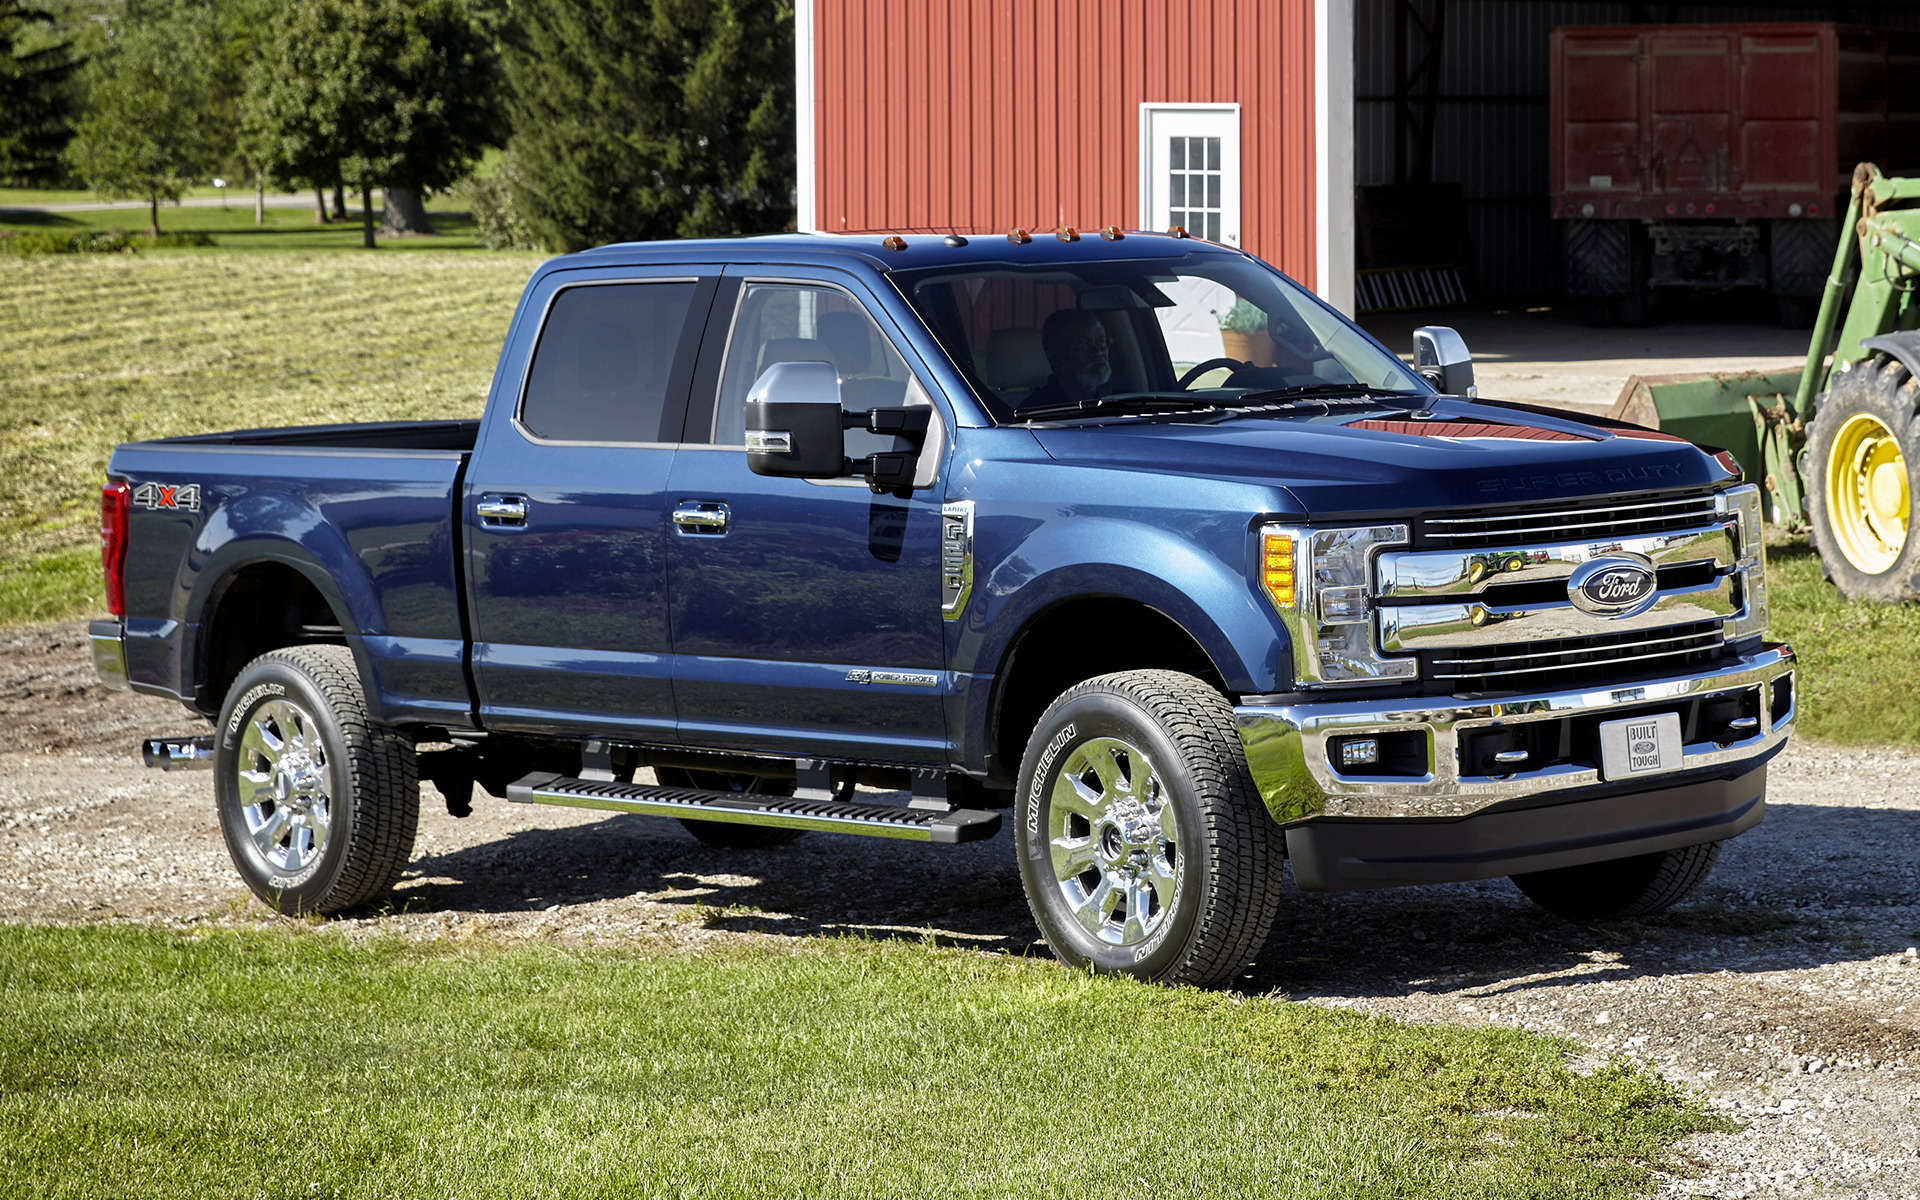 Ford F-250 Lariat Crew Cab (2017) Wallpapers and HD Images ...